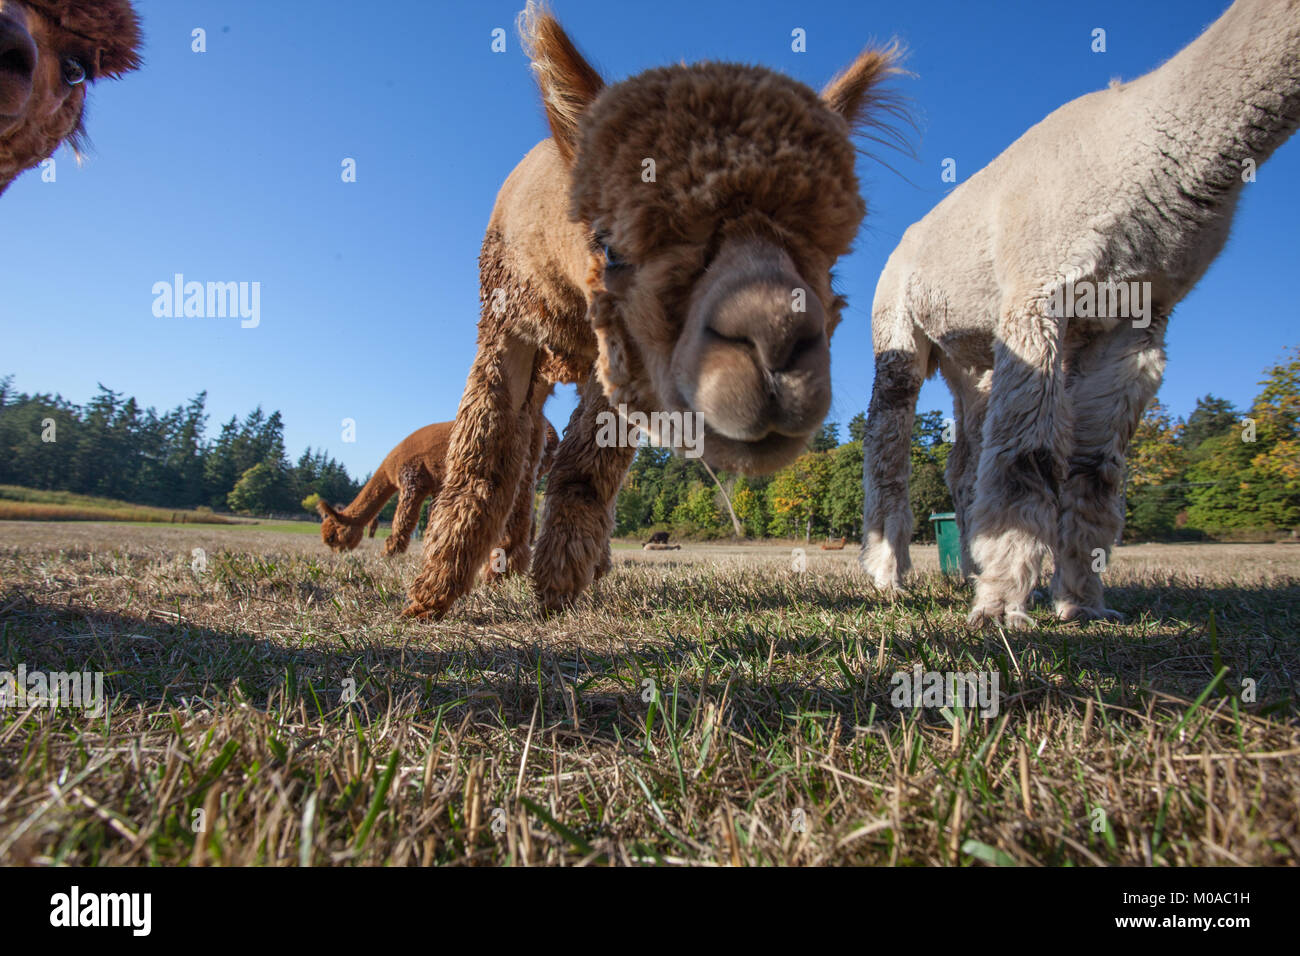 Looking up at cute Alpacas - Stock Image